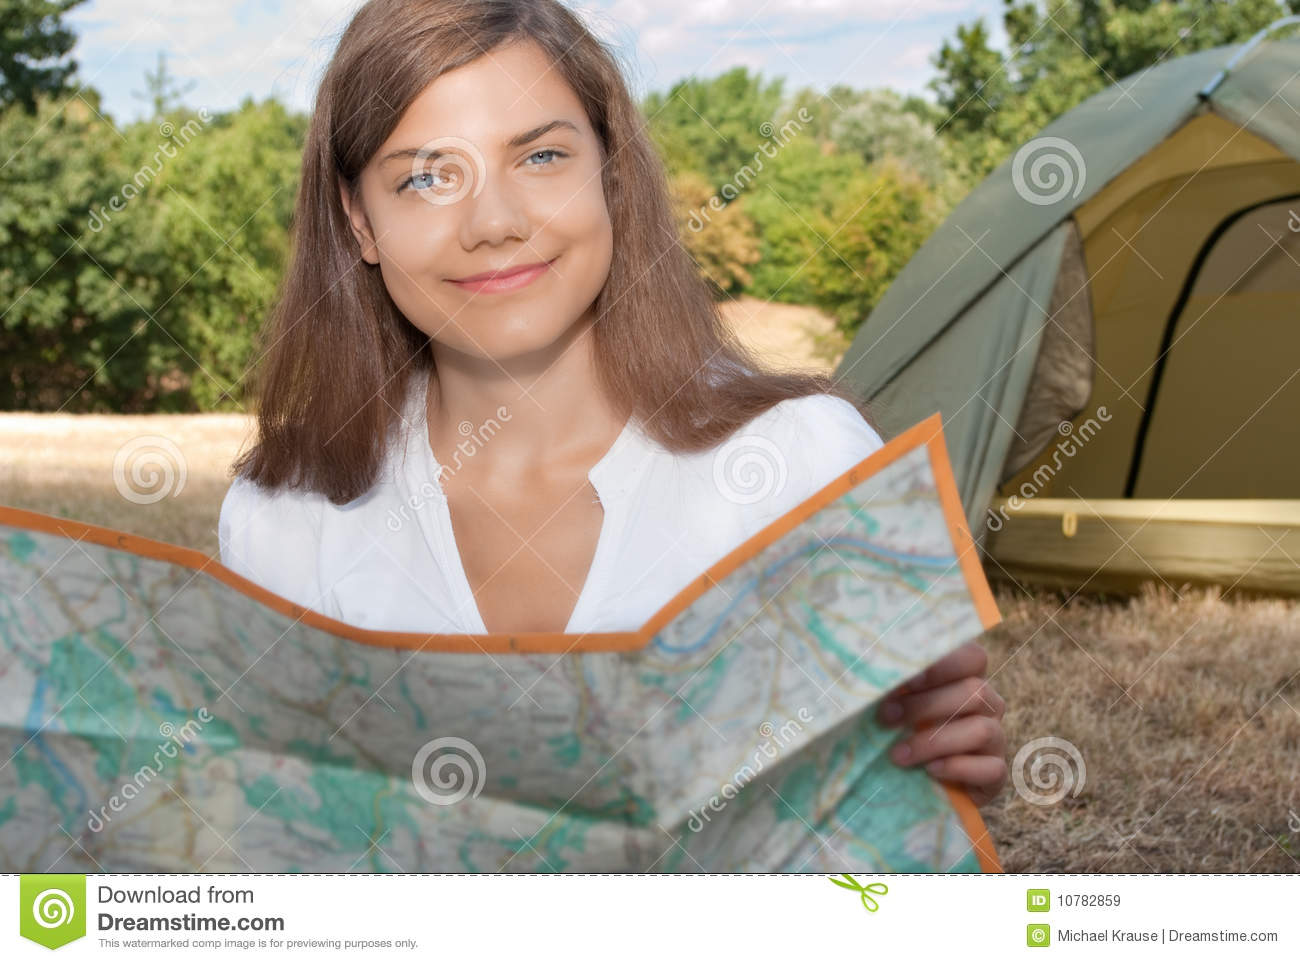 Woman Tent Camping Map Royalty Free Stock Images - Image: 10782859